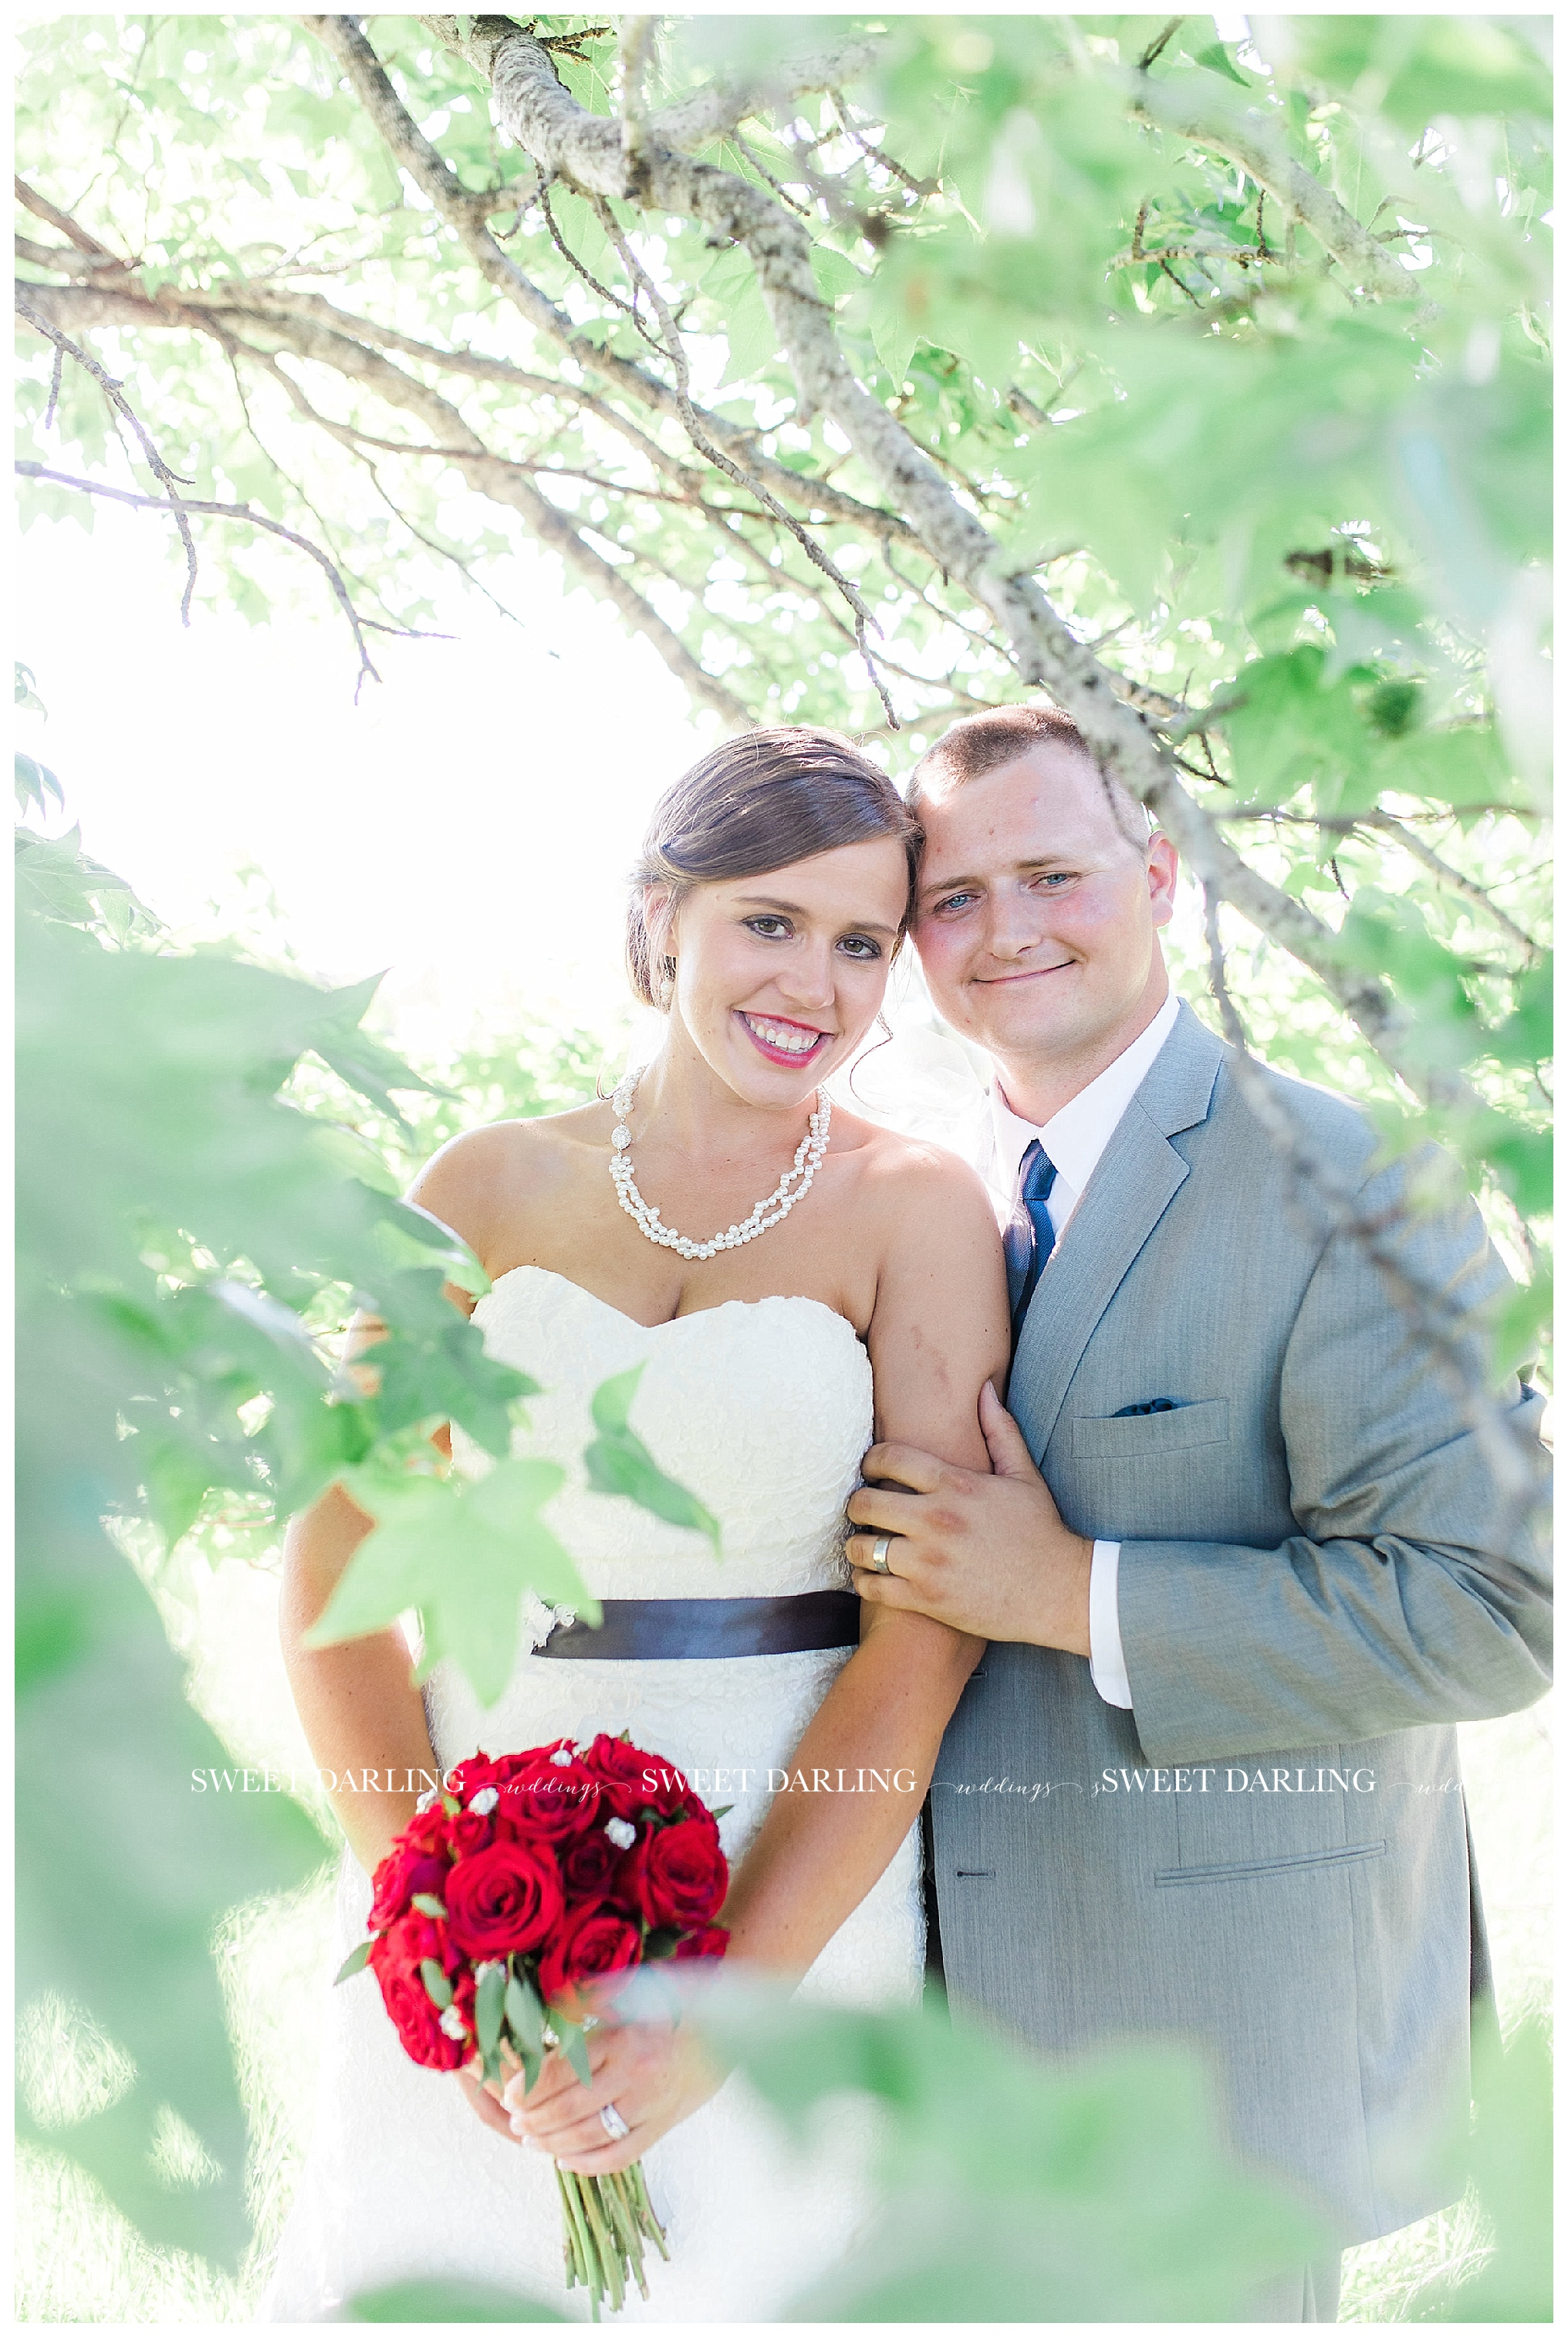 champaign-county-royal-paxton-illinois-sweet-darling-weddings-photography-red-navy-roses_1435.jpg